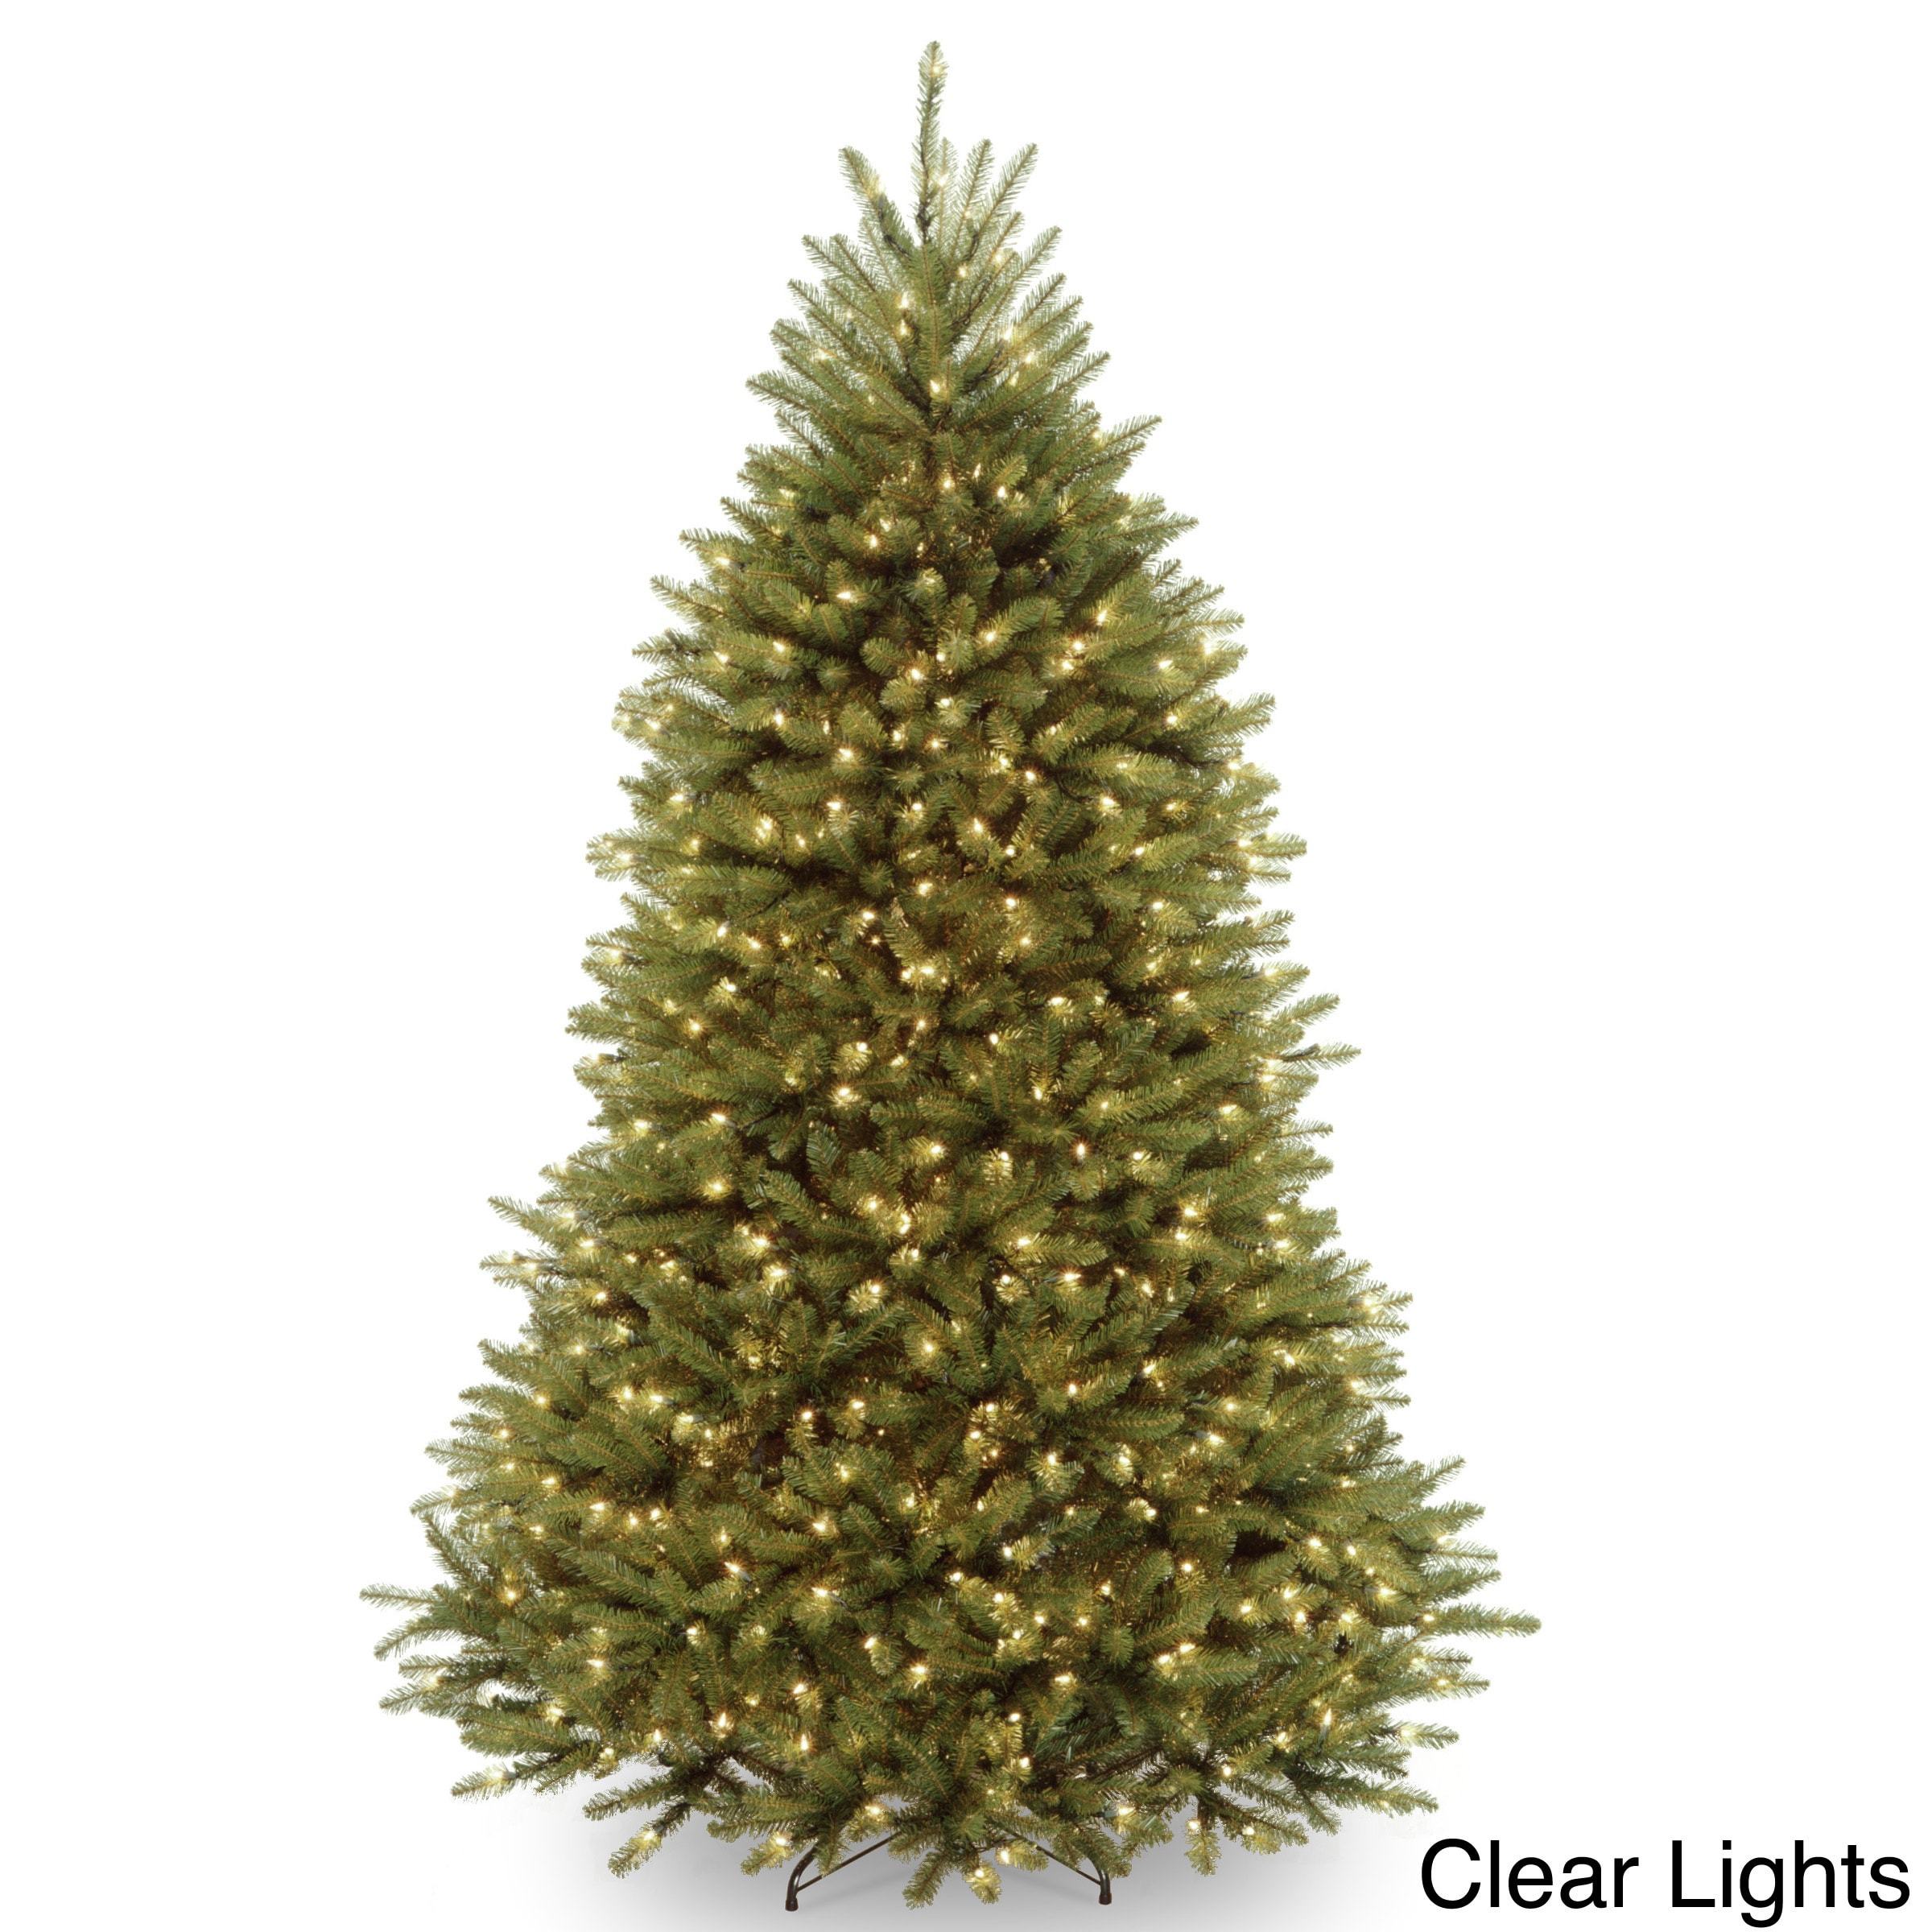 How Many Lights Per Foot Of Christmas Tree.7 5 Foot Dunhill Fir Pre Lit Or Unlit Artificial Christmas Tree